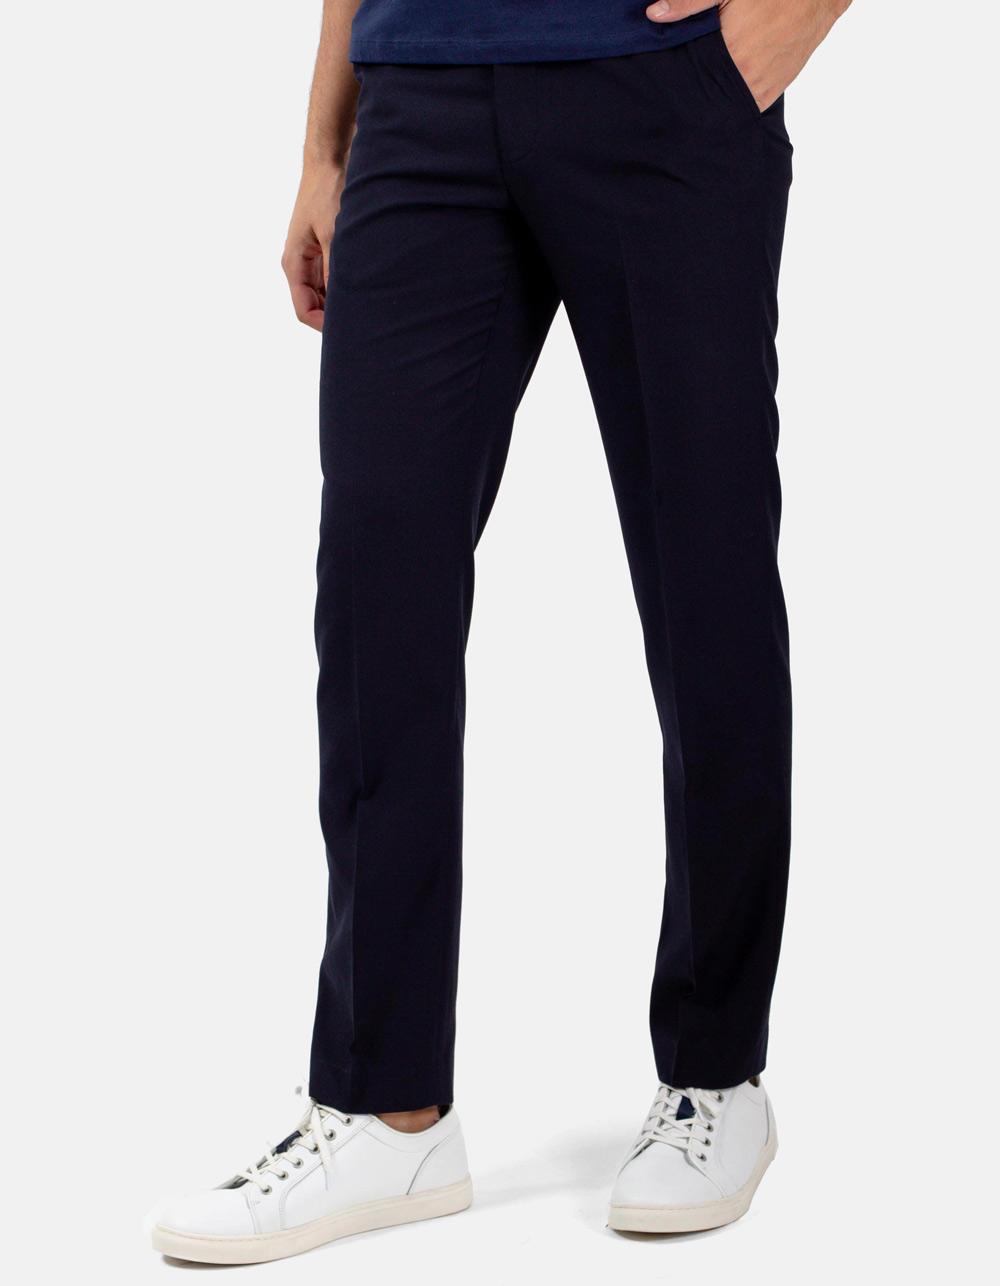 Navy blue plain trousers